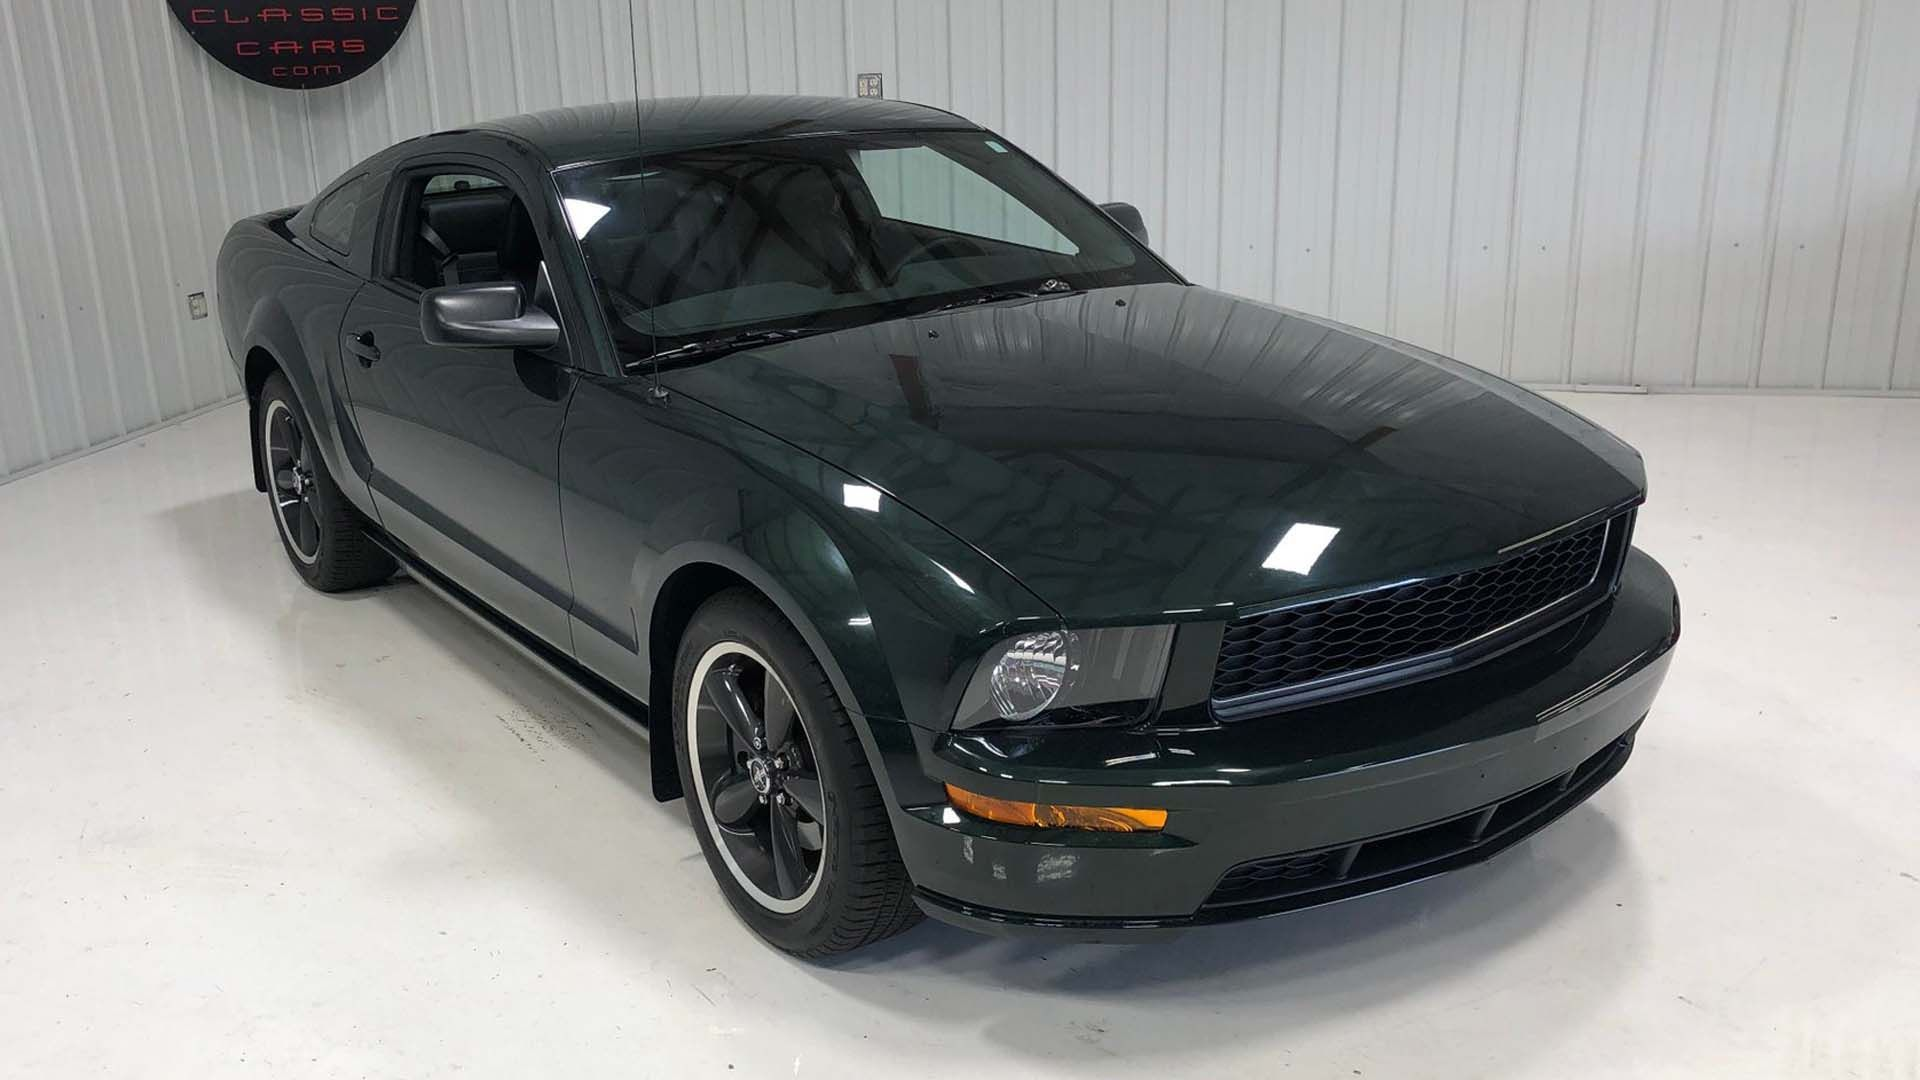 Add One Of The Last 2008 Bullitt Mustangs To Your